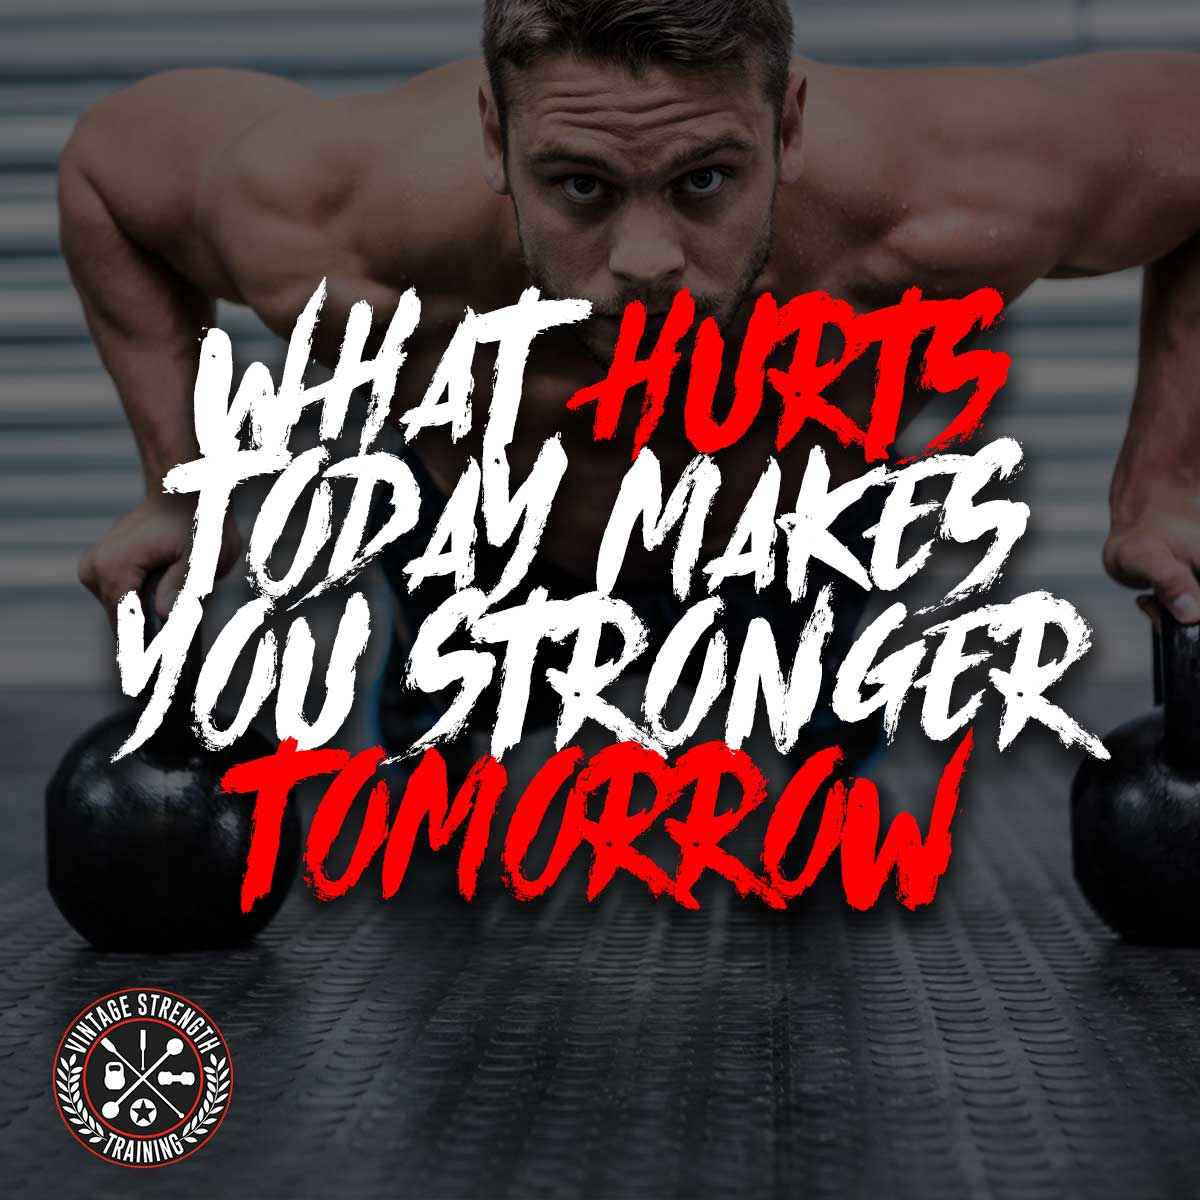 What Hurts Today